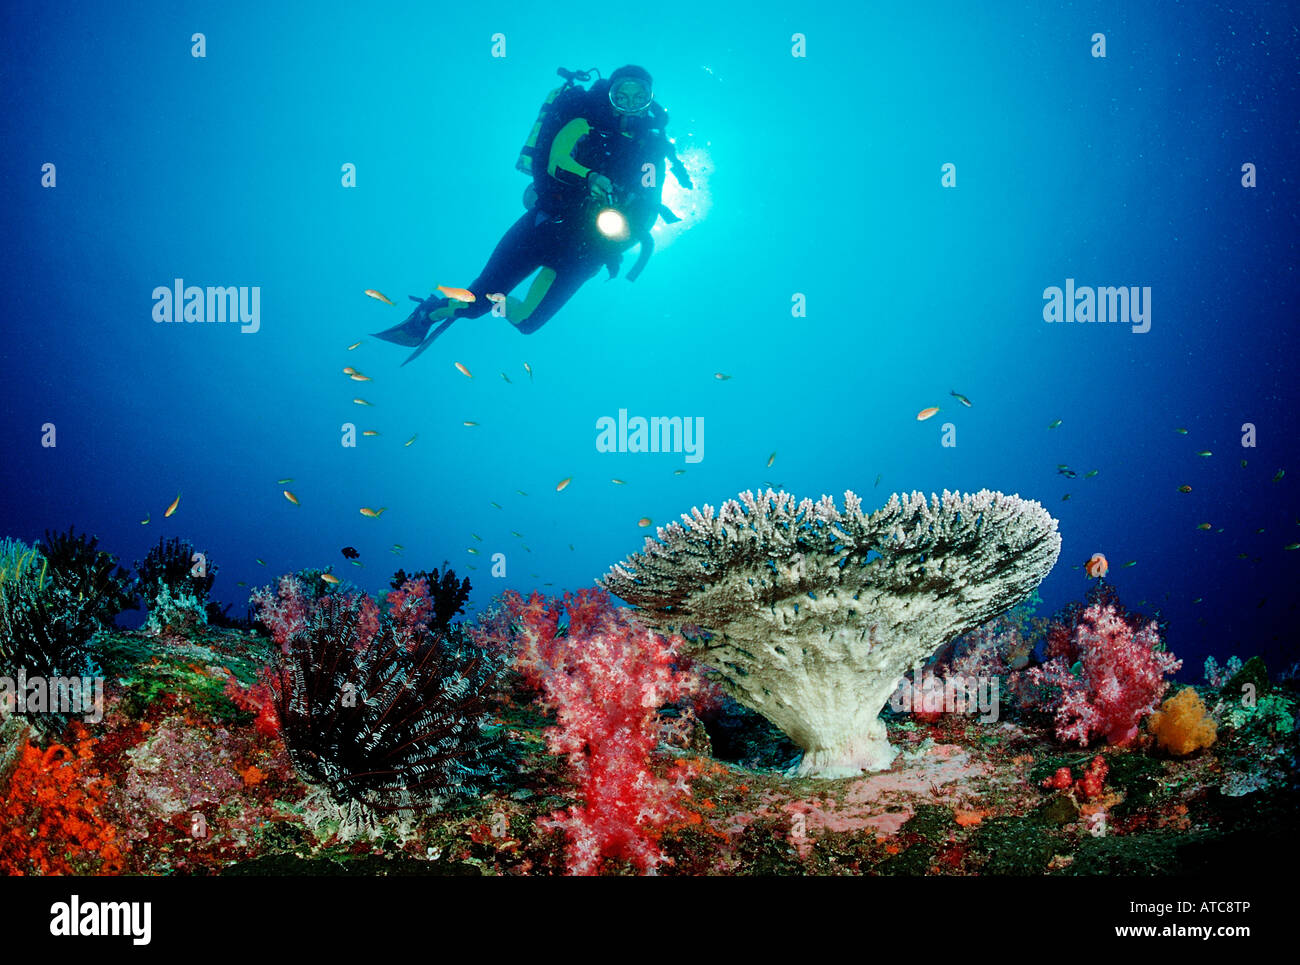 Coral Reef and Diver Similan Islands Thailand - Stock Image